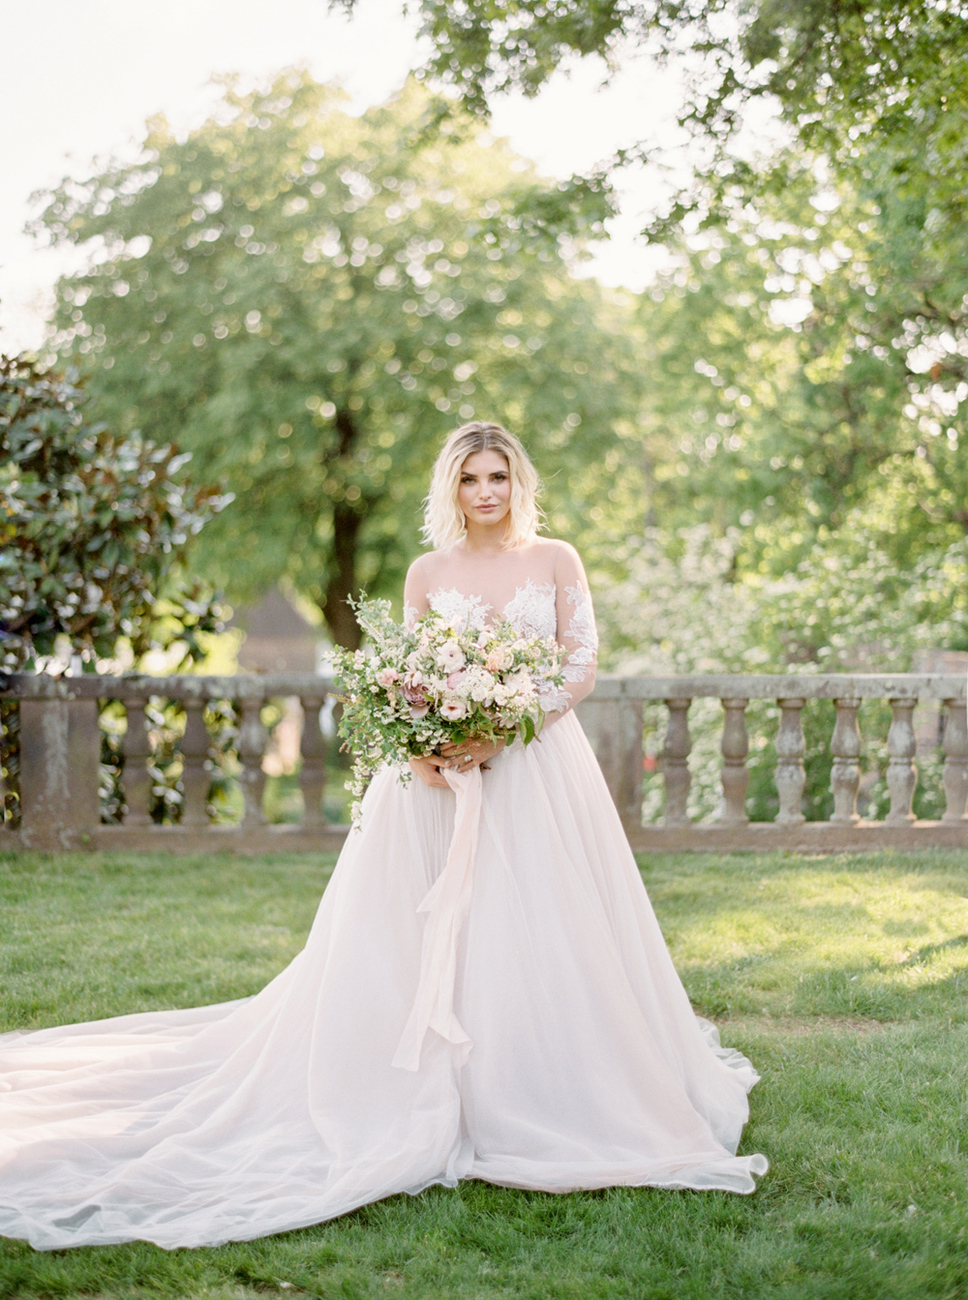 French Formal Garden Wedding Tyler Gardens Romantic Film Wedding Photographer Emily Wren Photography 30